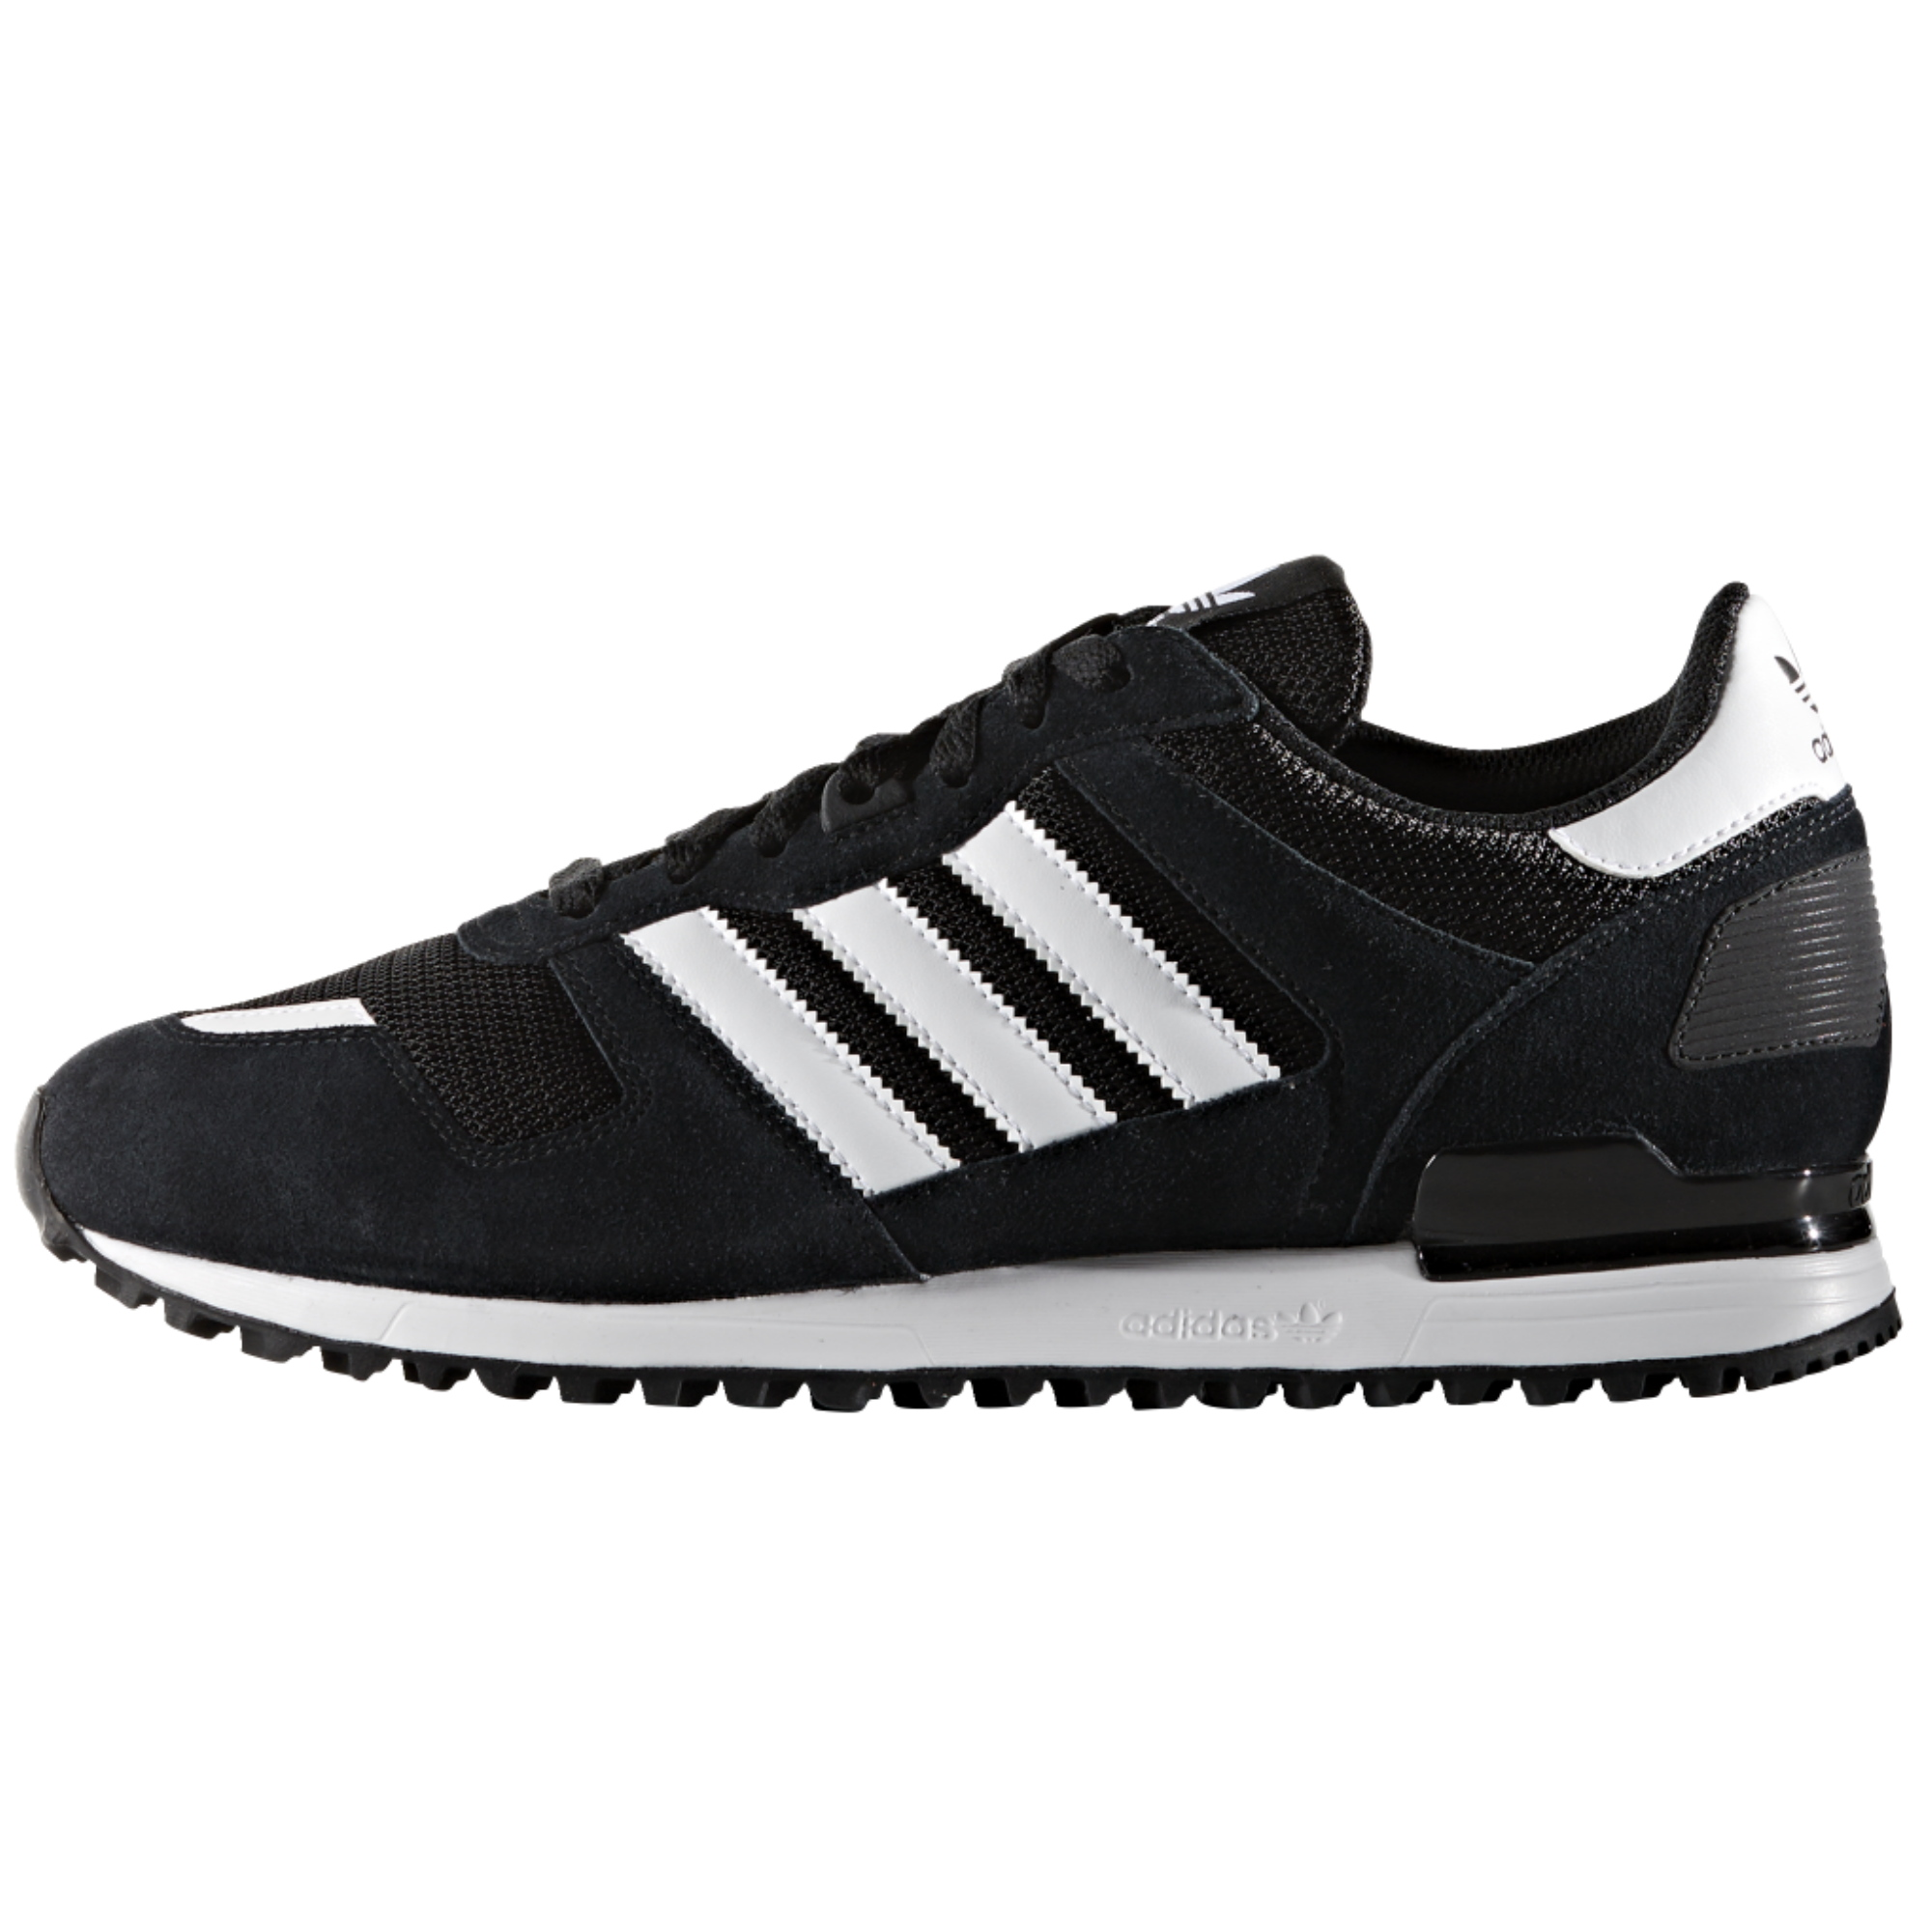 adidas originals zx 700 schuhe turnschuhe sneaker herren. Black Bedroom Furniture Sets. Home Design Ideas